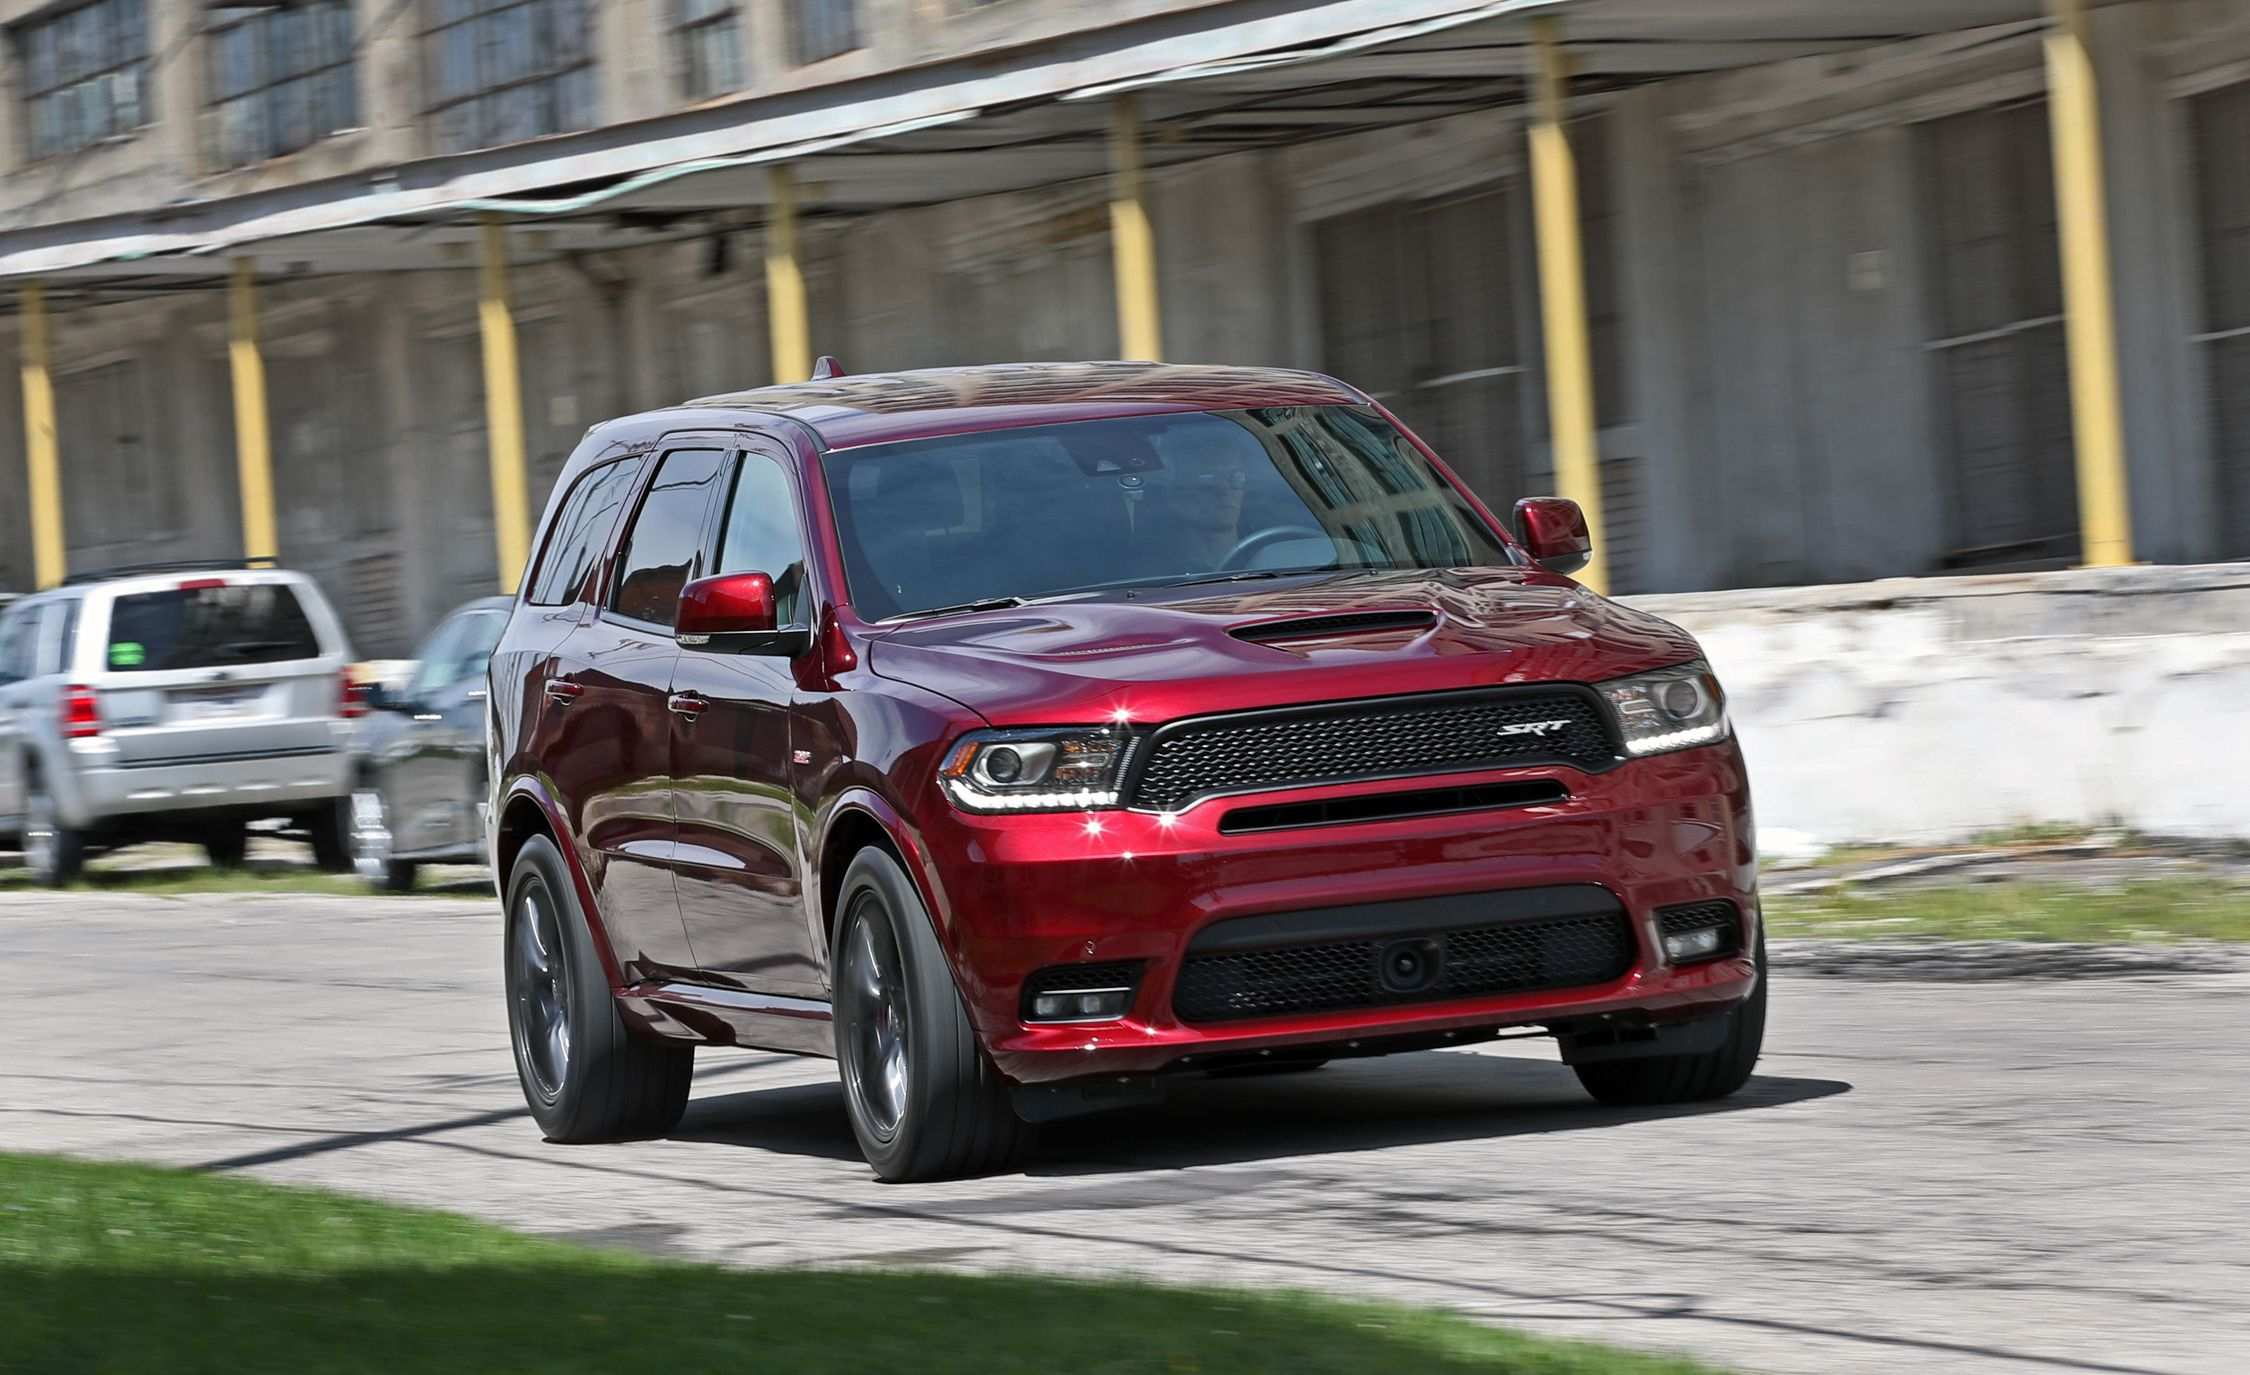 75 The 2020 Dodge Durango Diesel Srt8 Configurations